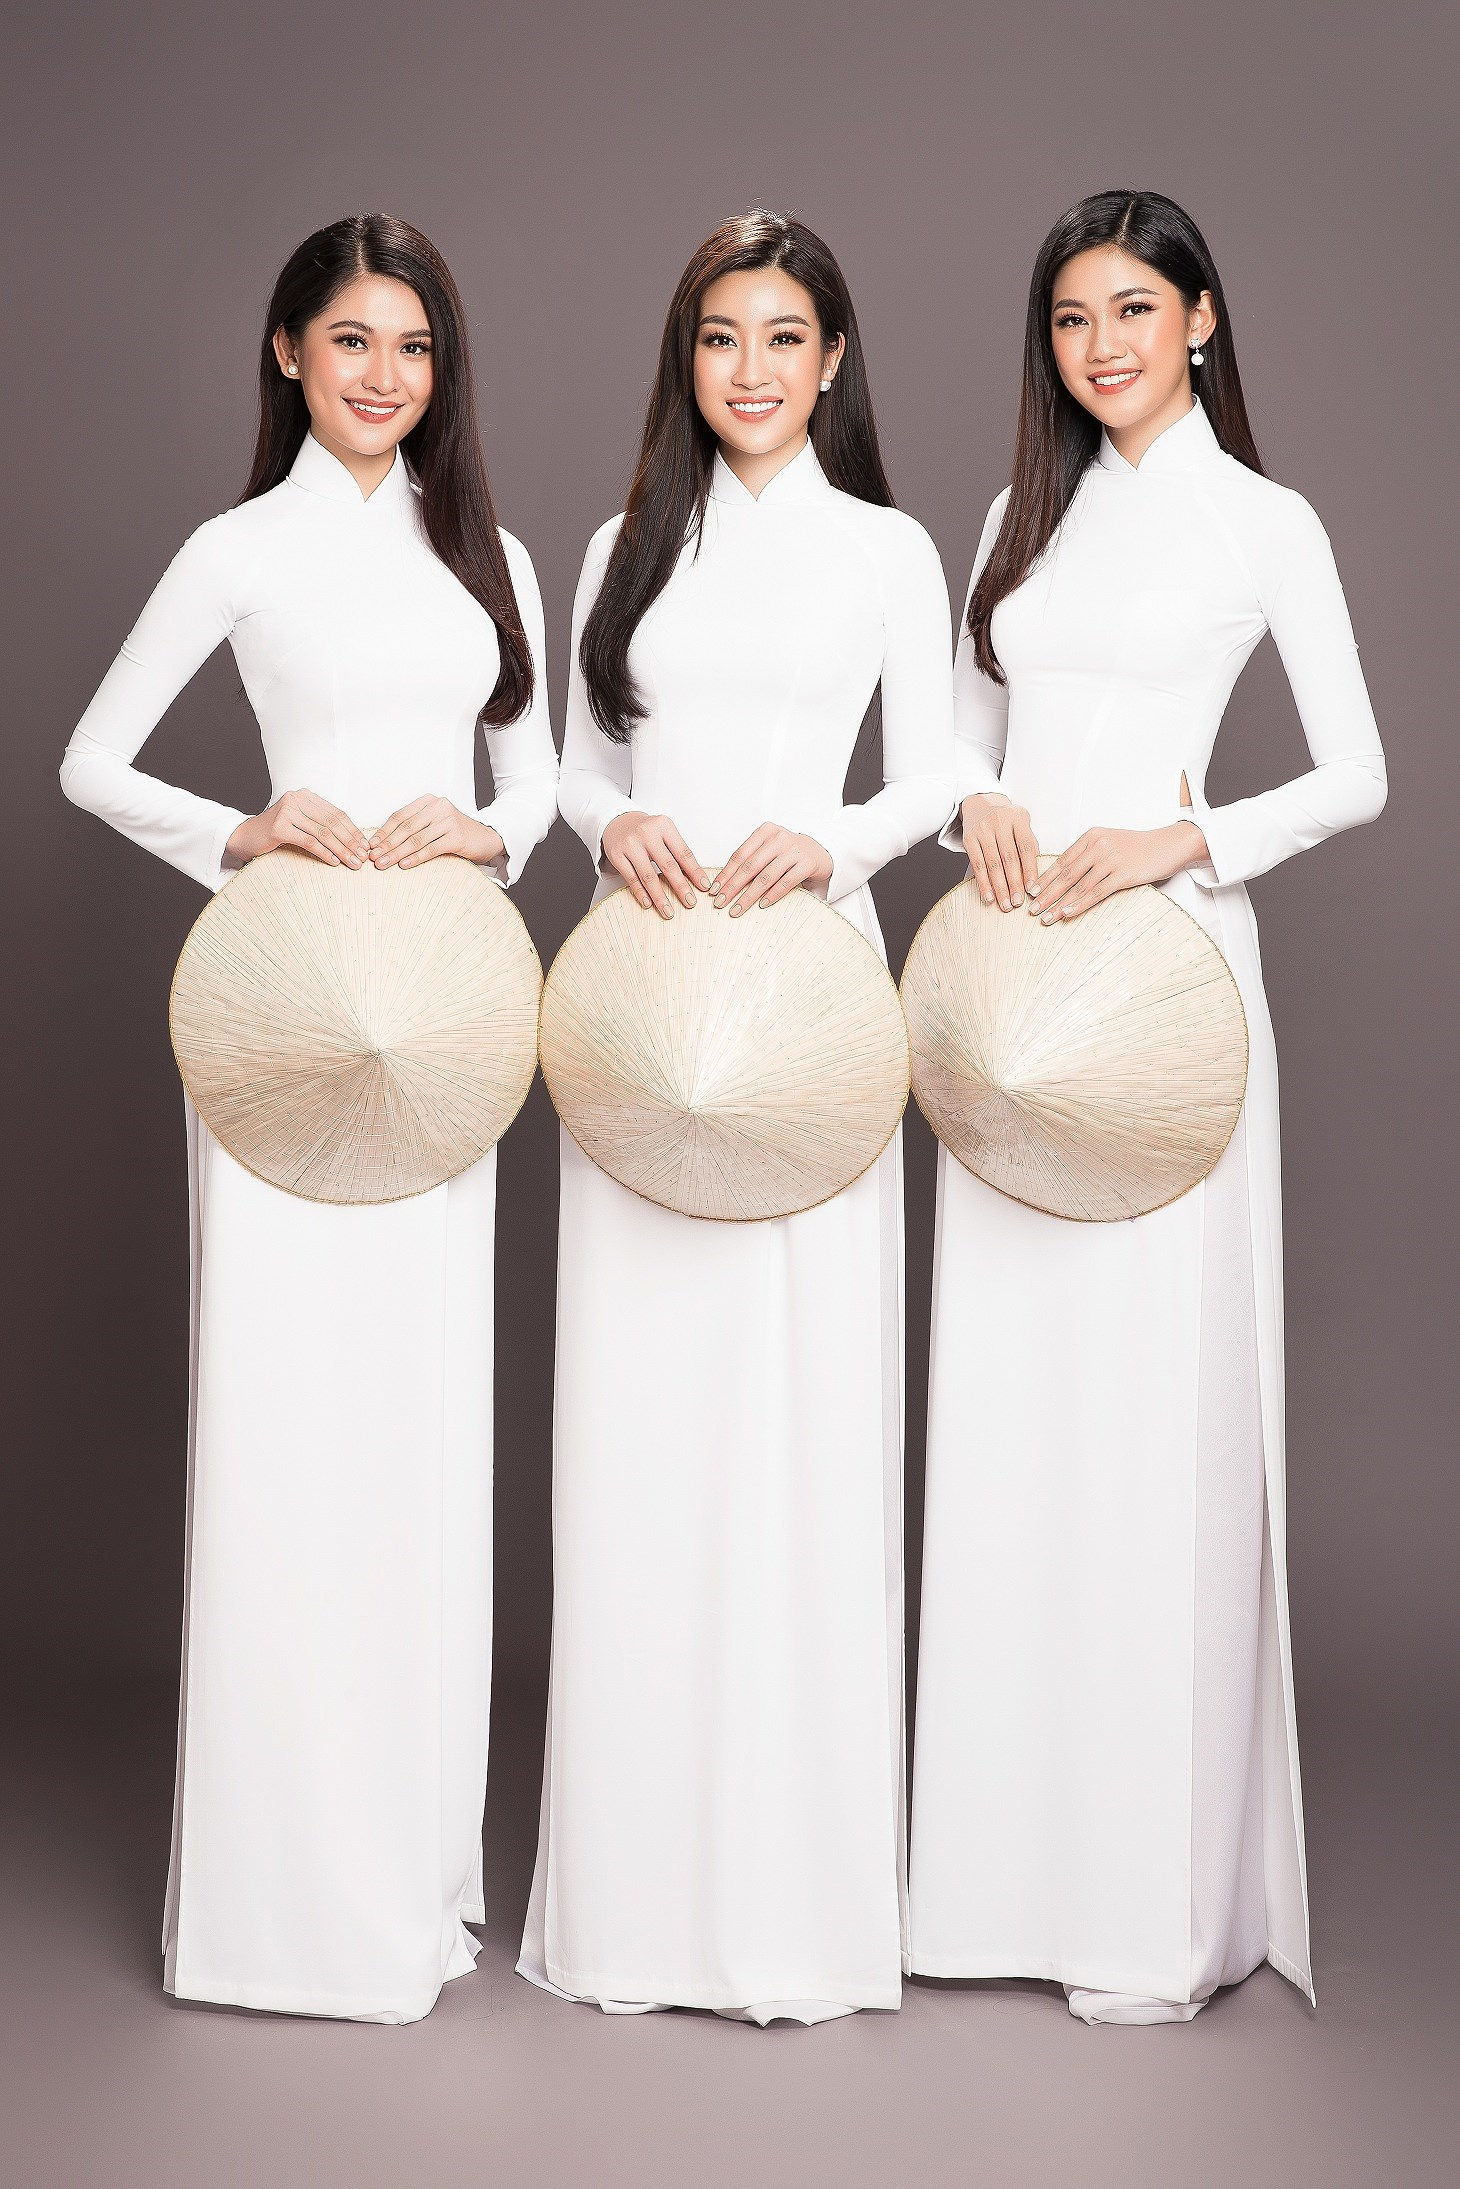 ao dai may do